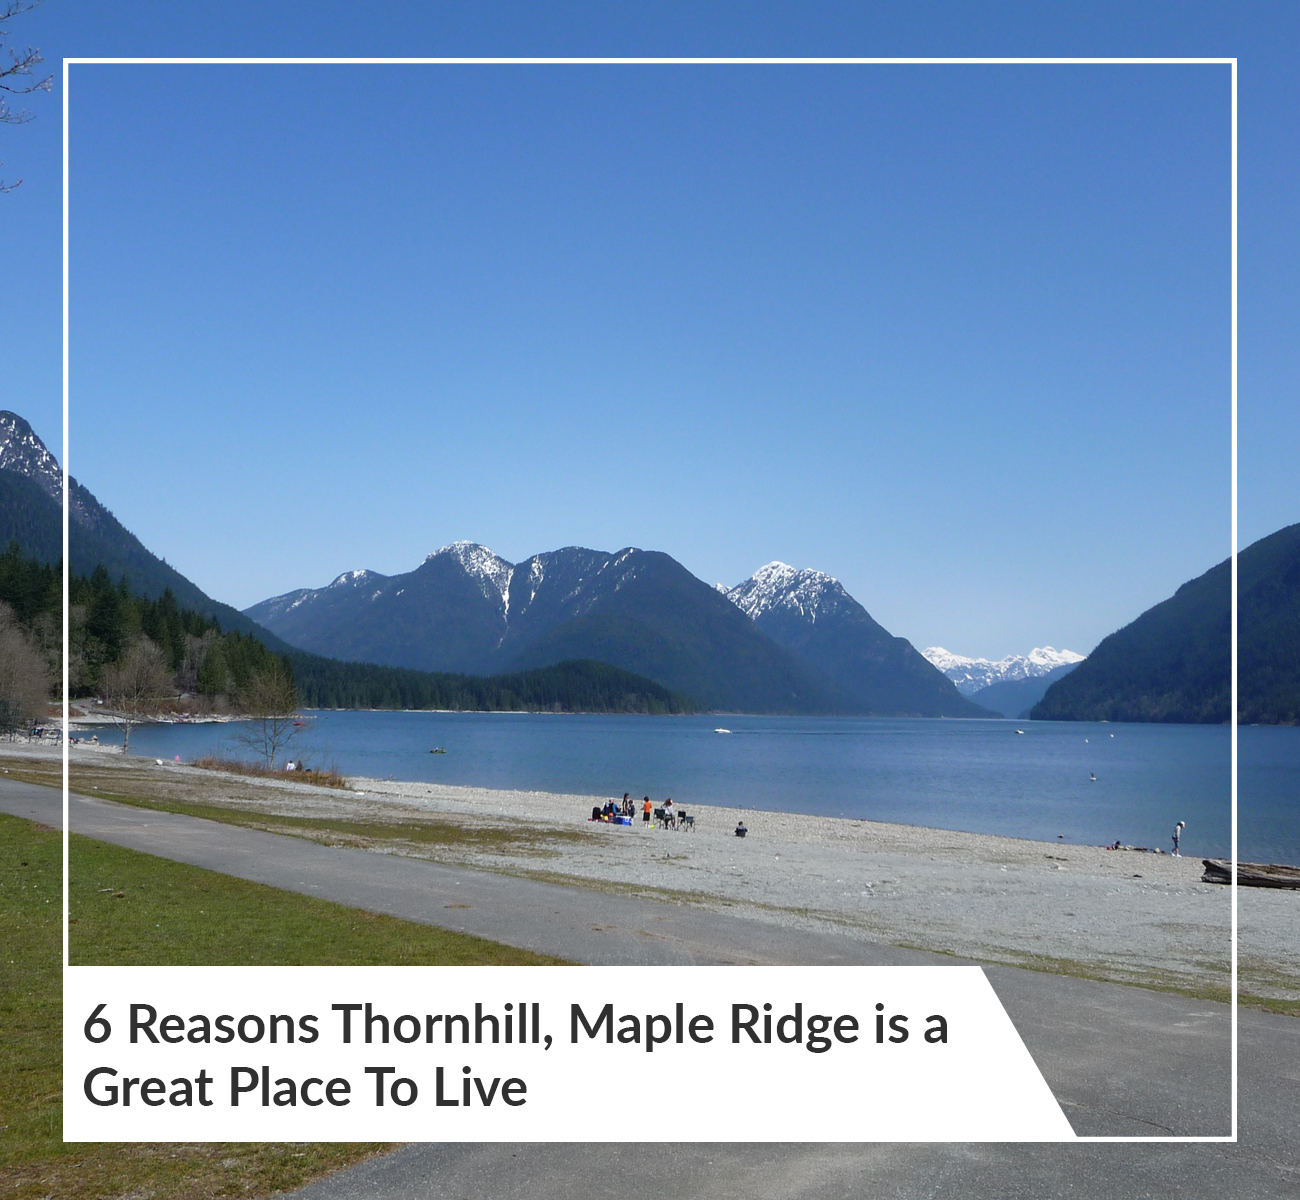 6 Reasons Thornhill, Maple Ridge is a Great Place To Live